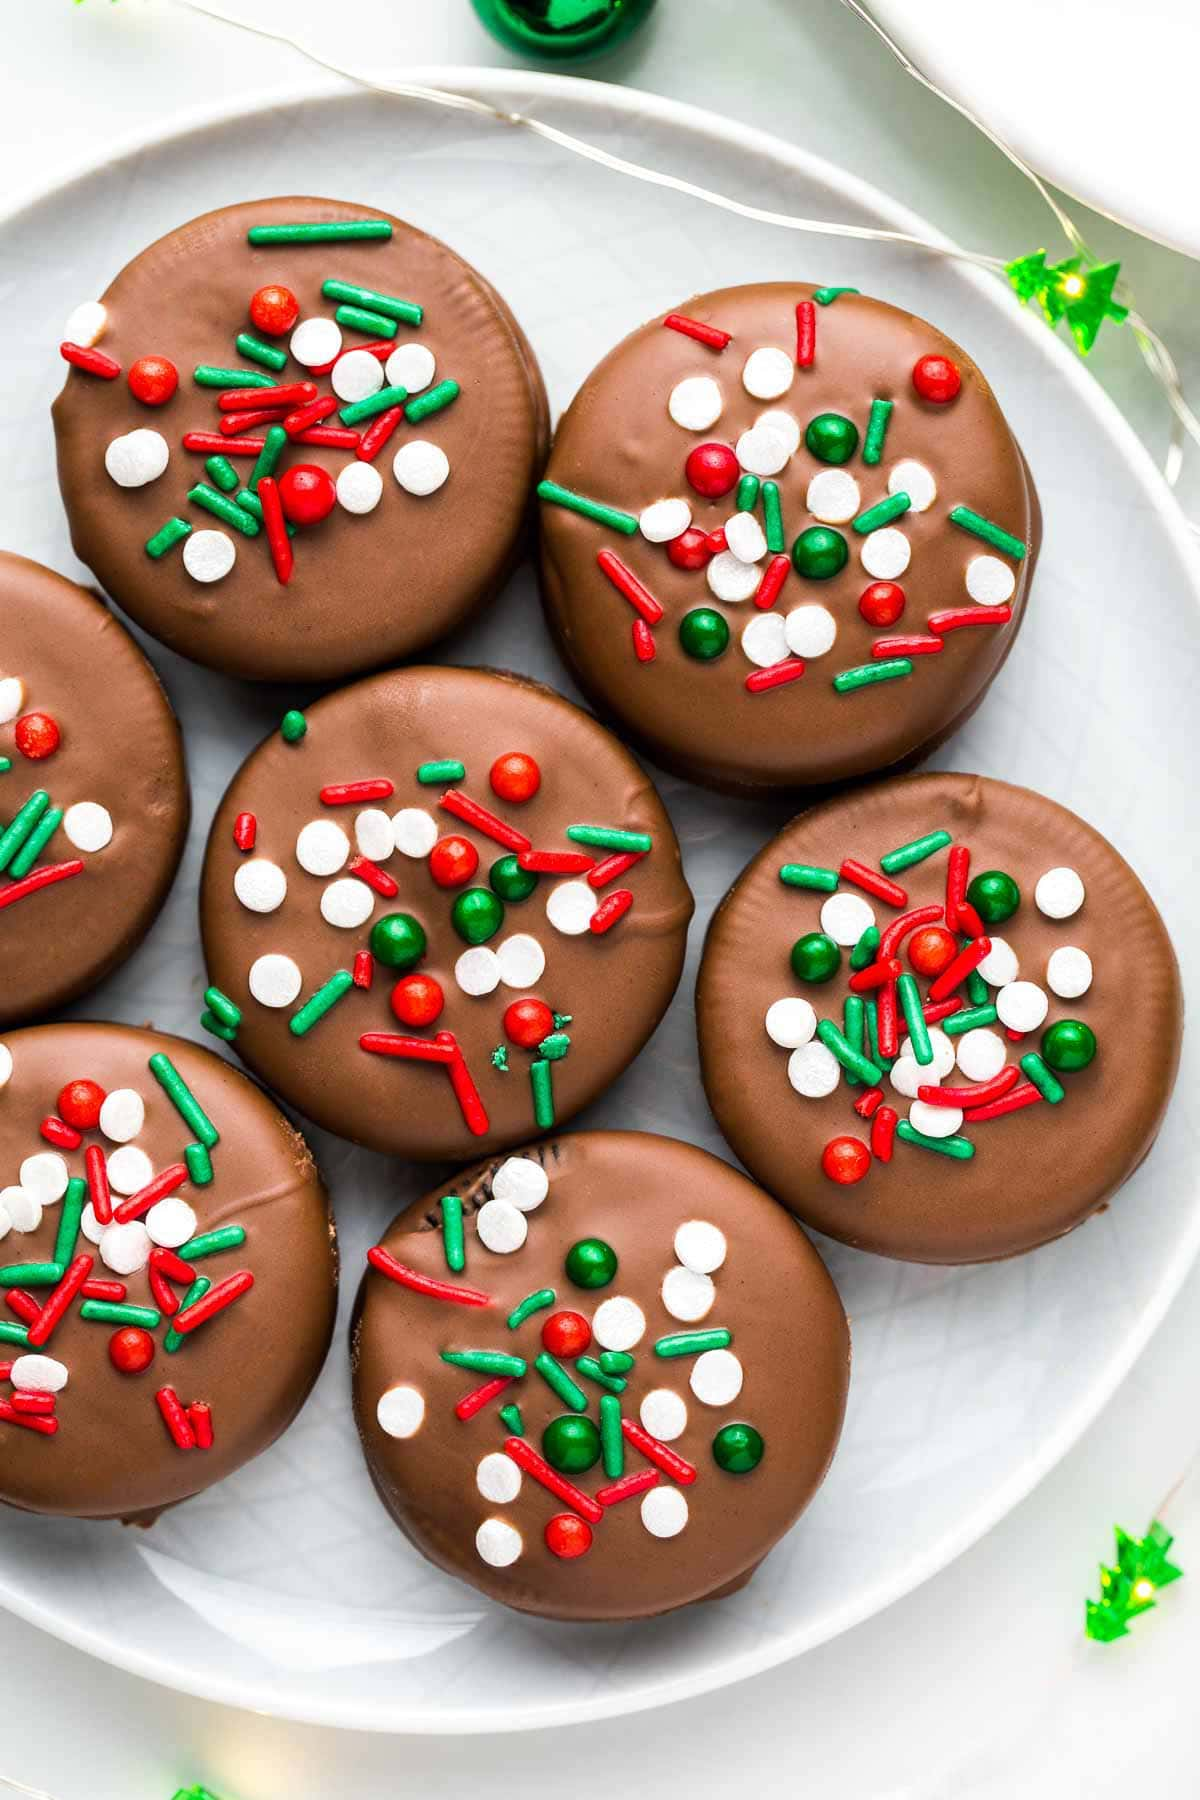 Overhead shot of Chocolate Covered Oreos on a plate with Christmas ornaments and lights.